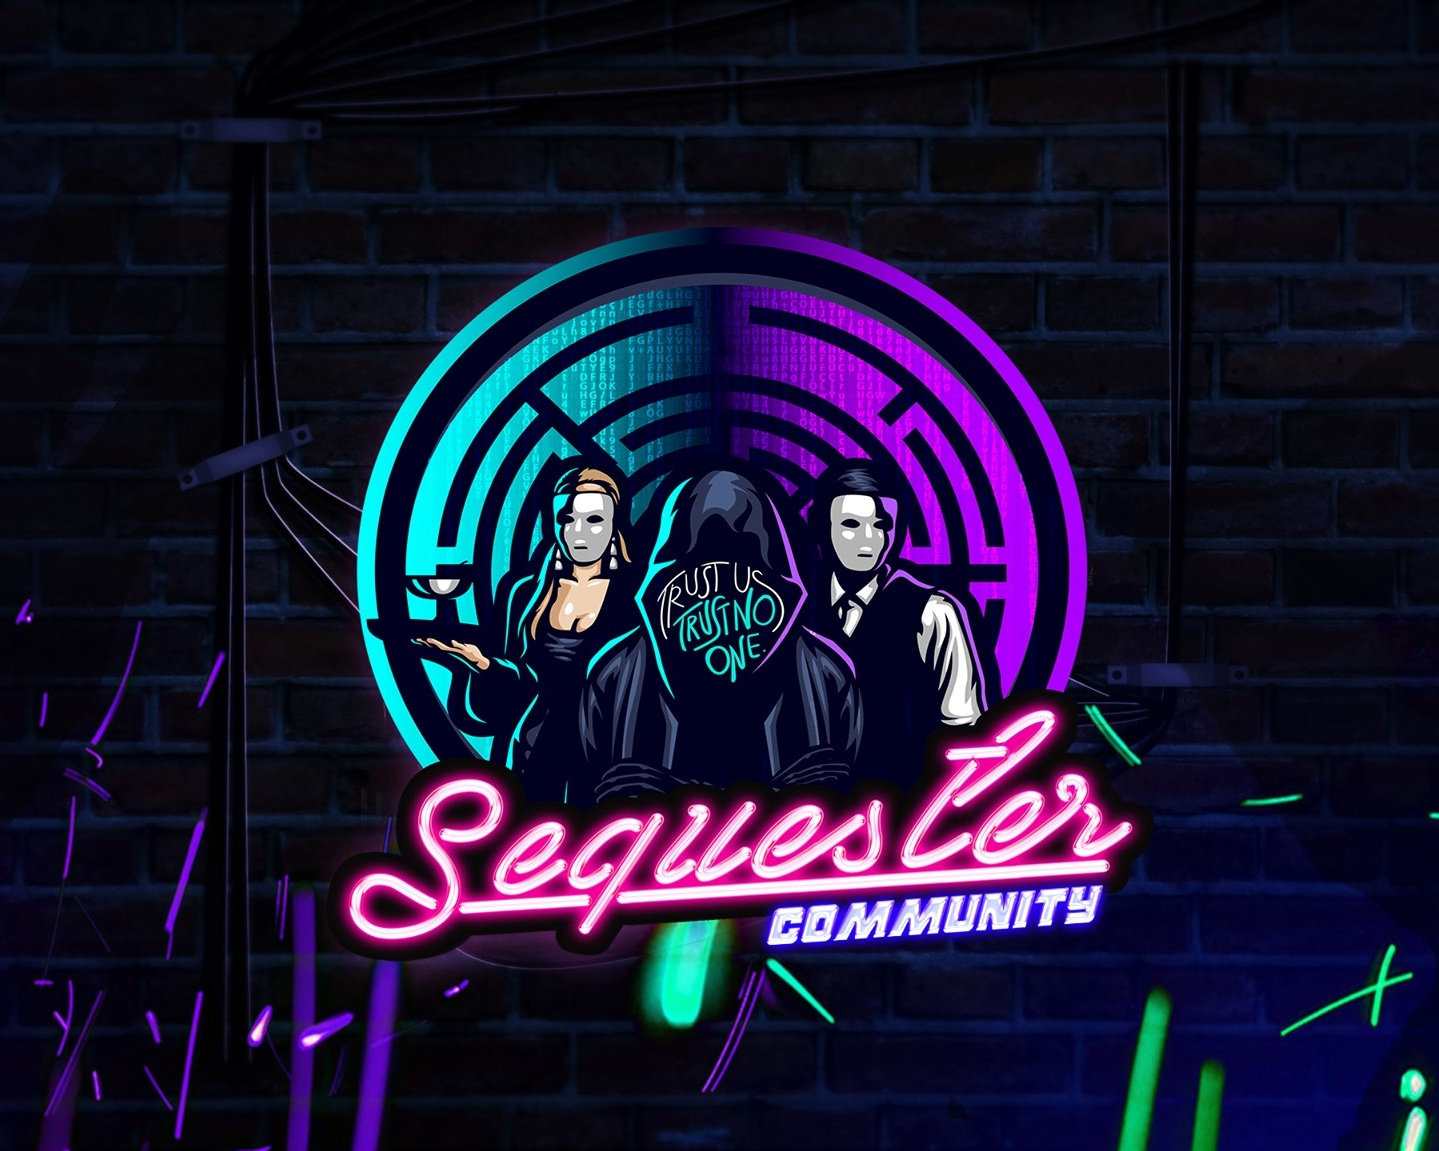 Join the Sequester Facebook Group! - The facebook group is the best place to interact with other Sequester lovers and alumni. It is also the only place to sign up for Sequester Mini Games!